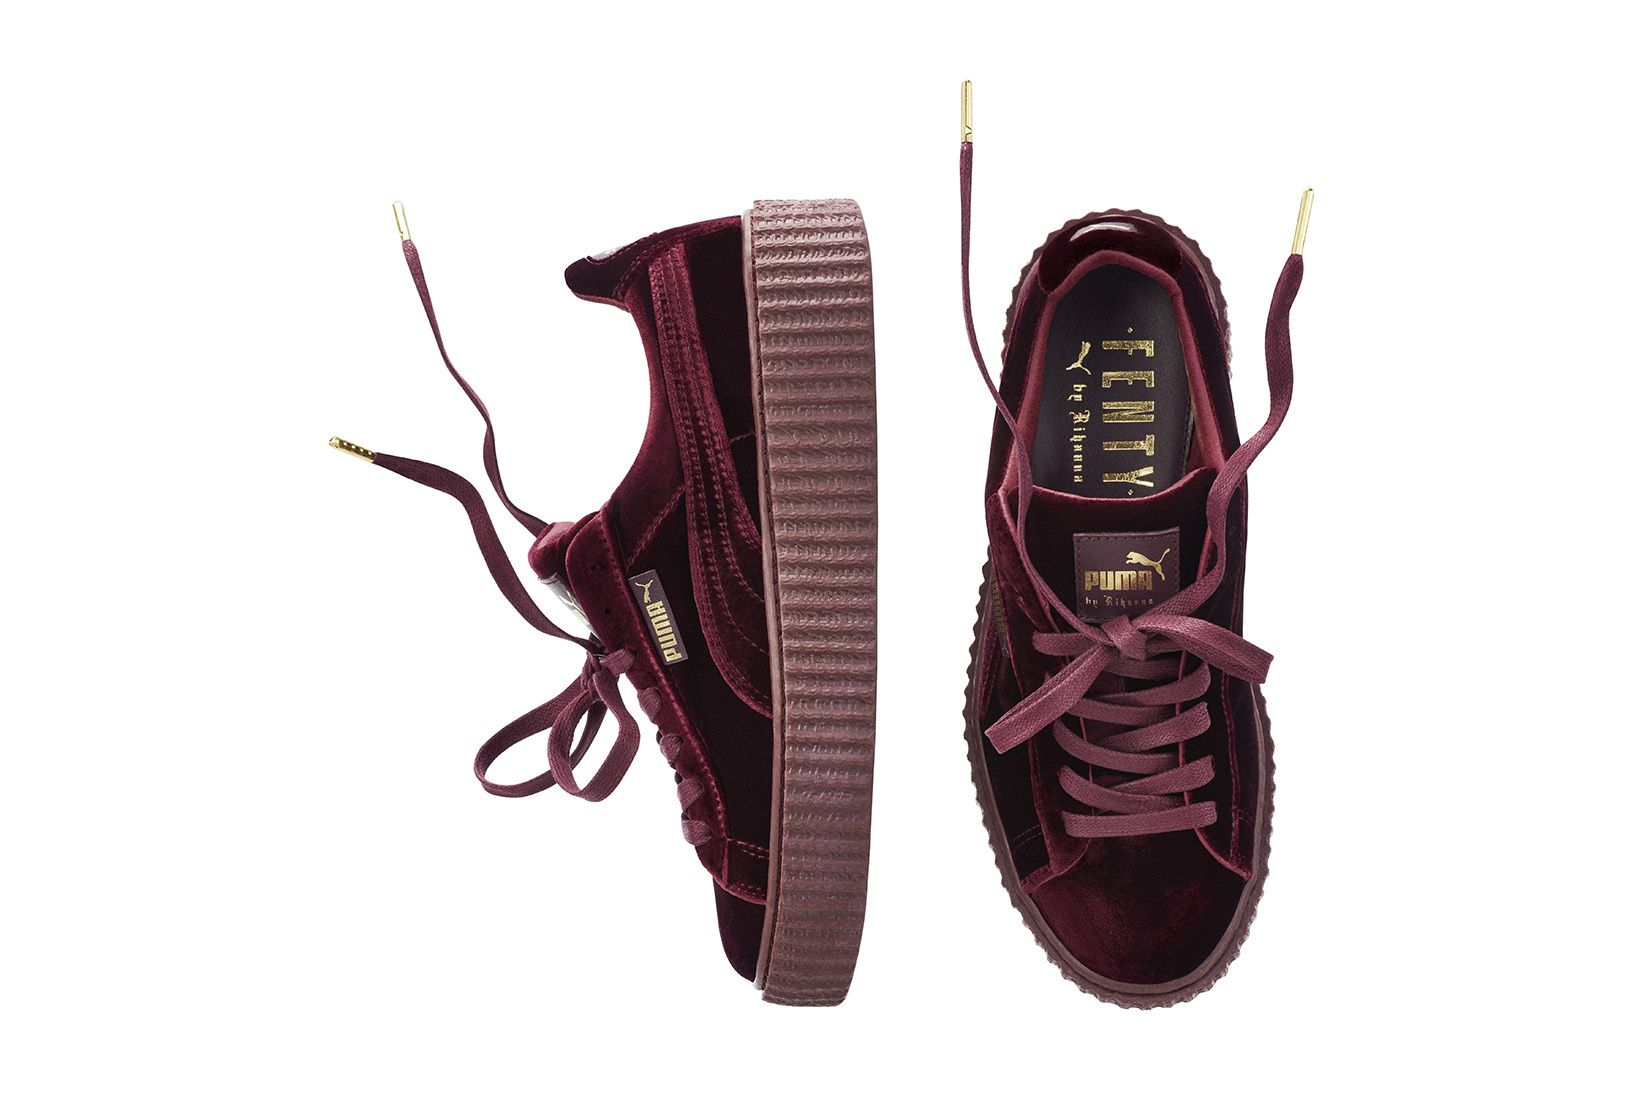 100% authentic 561a0 b060d Every Bad Gal Needs Rihanna's New Velvet PUMA Creepers ...